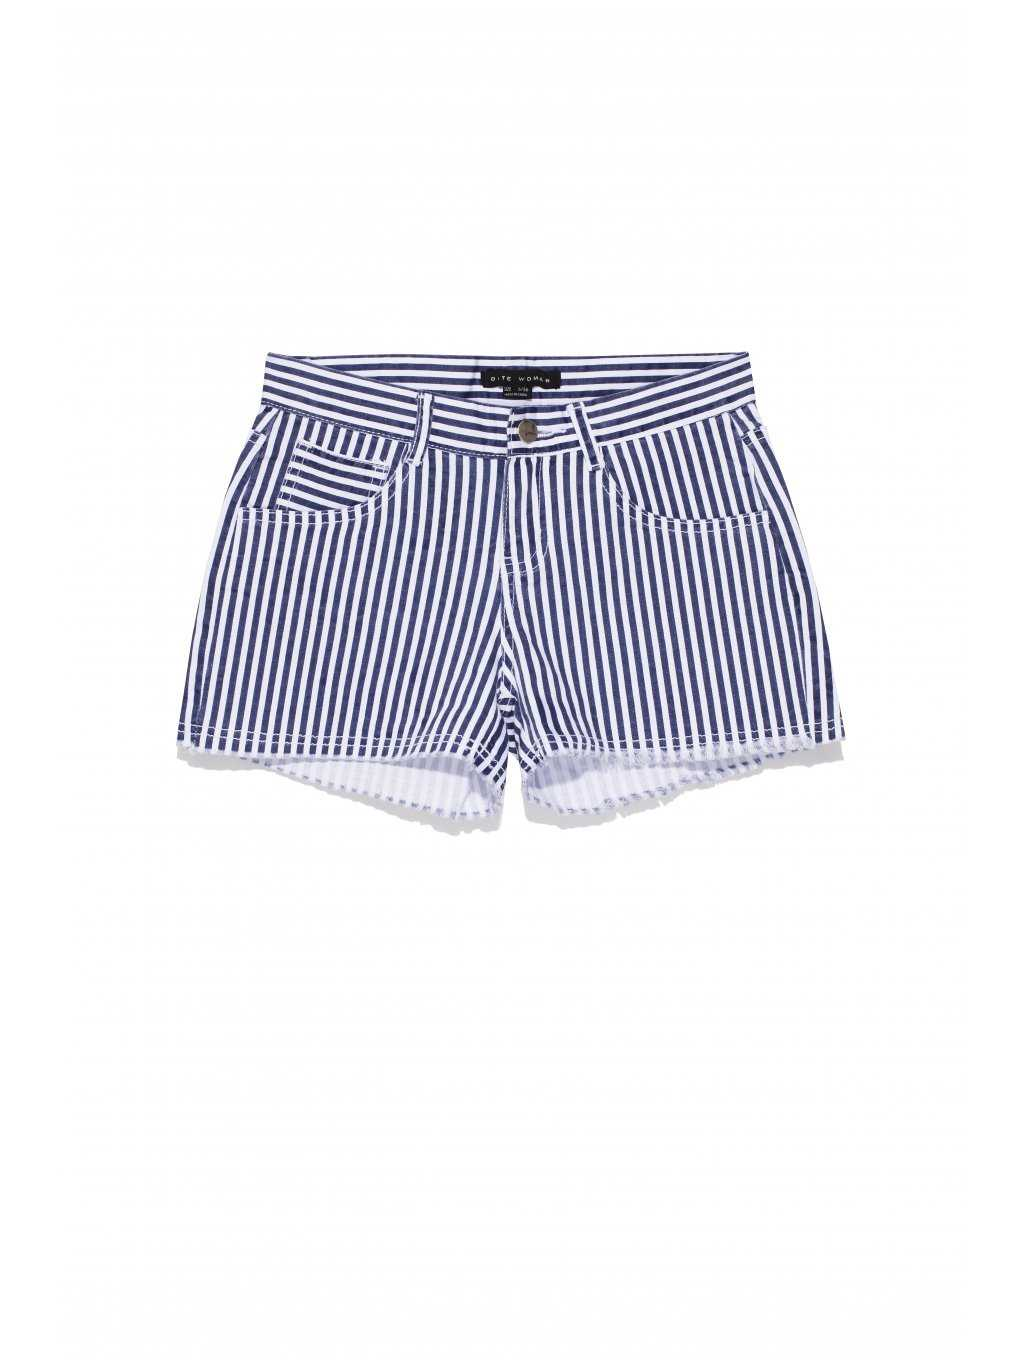 Striped stretch shorts